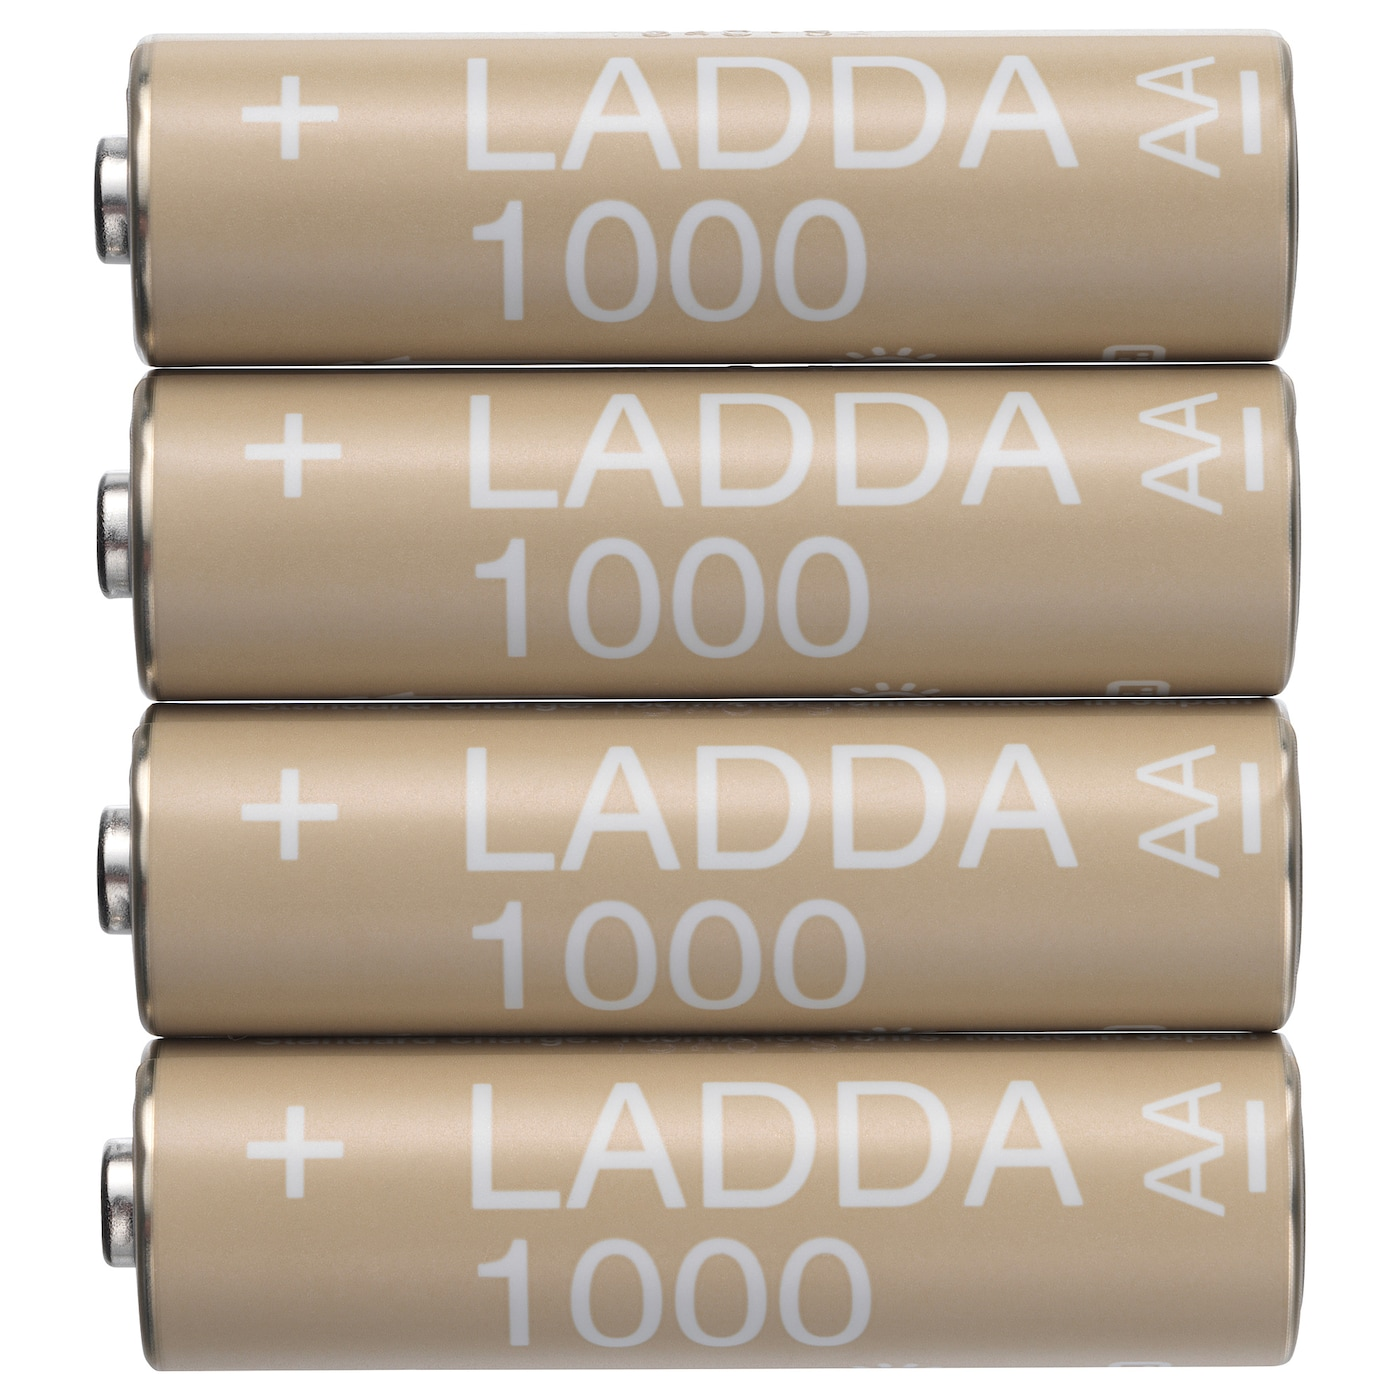 IKEA LADDA rechargeable battery The battery is ready to use.